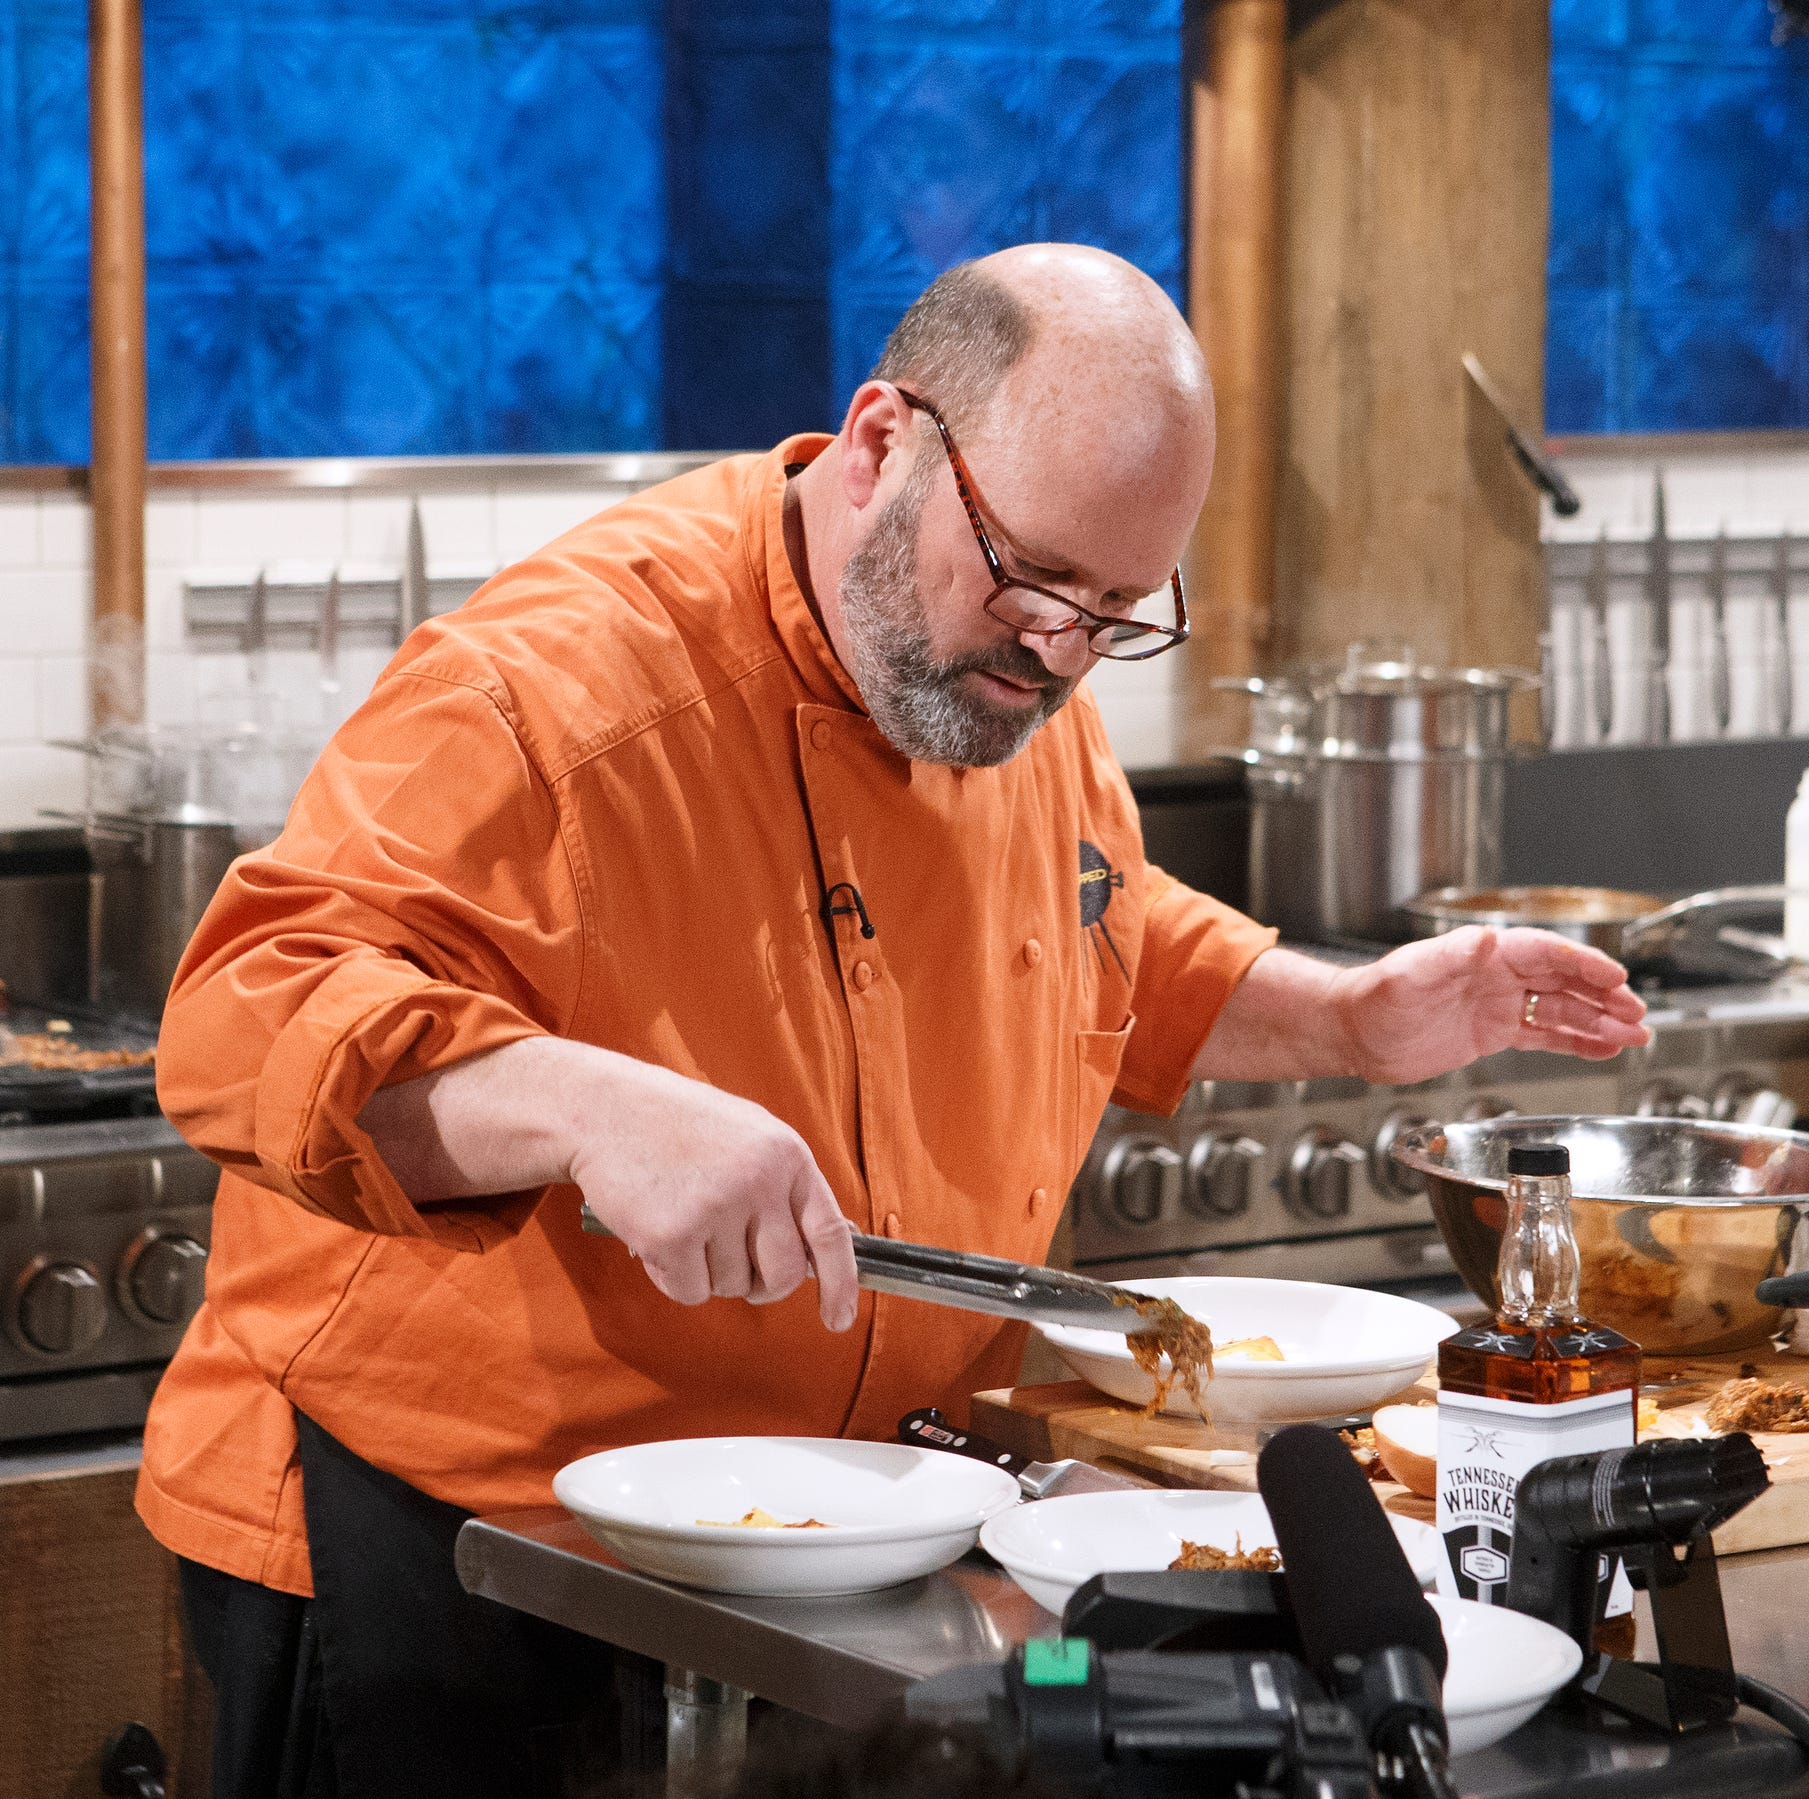 Memphis-style barbecue pitmasters battle on Food Network's 'Chopped'